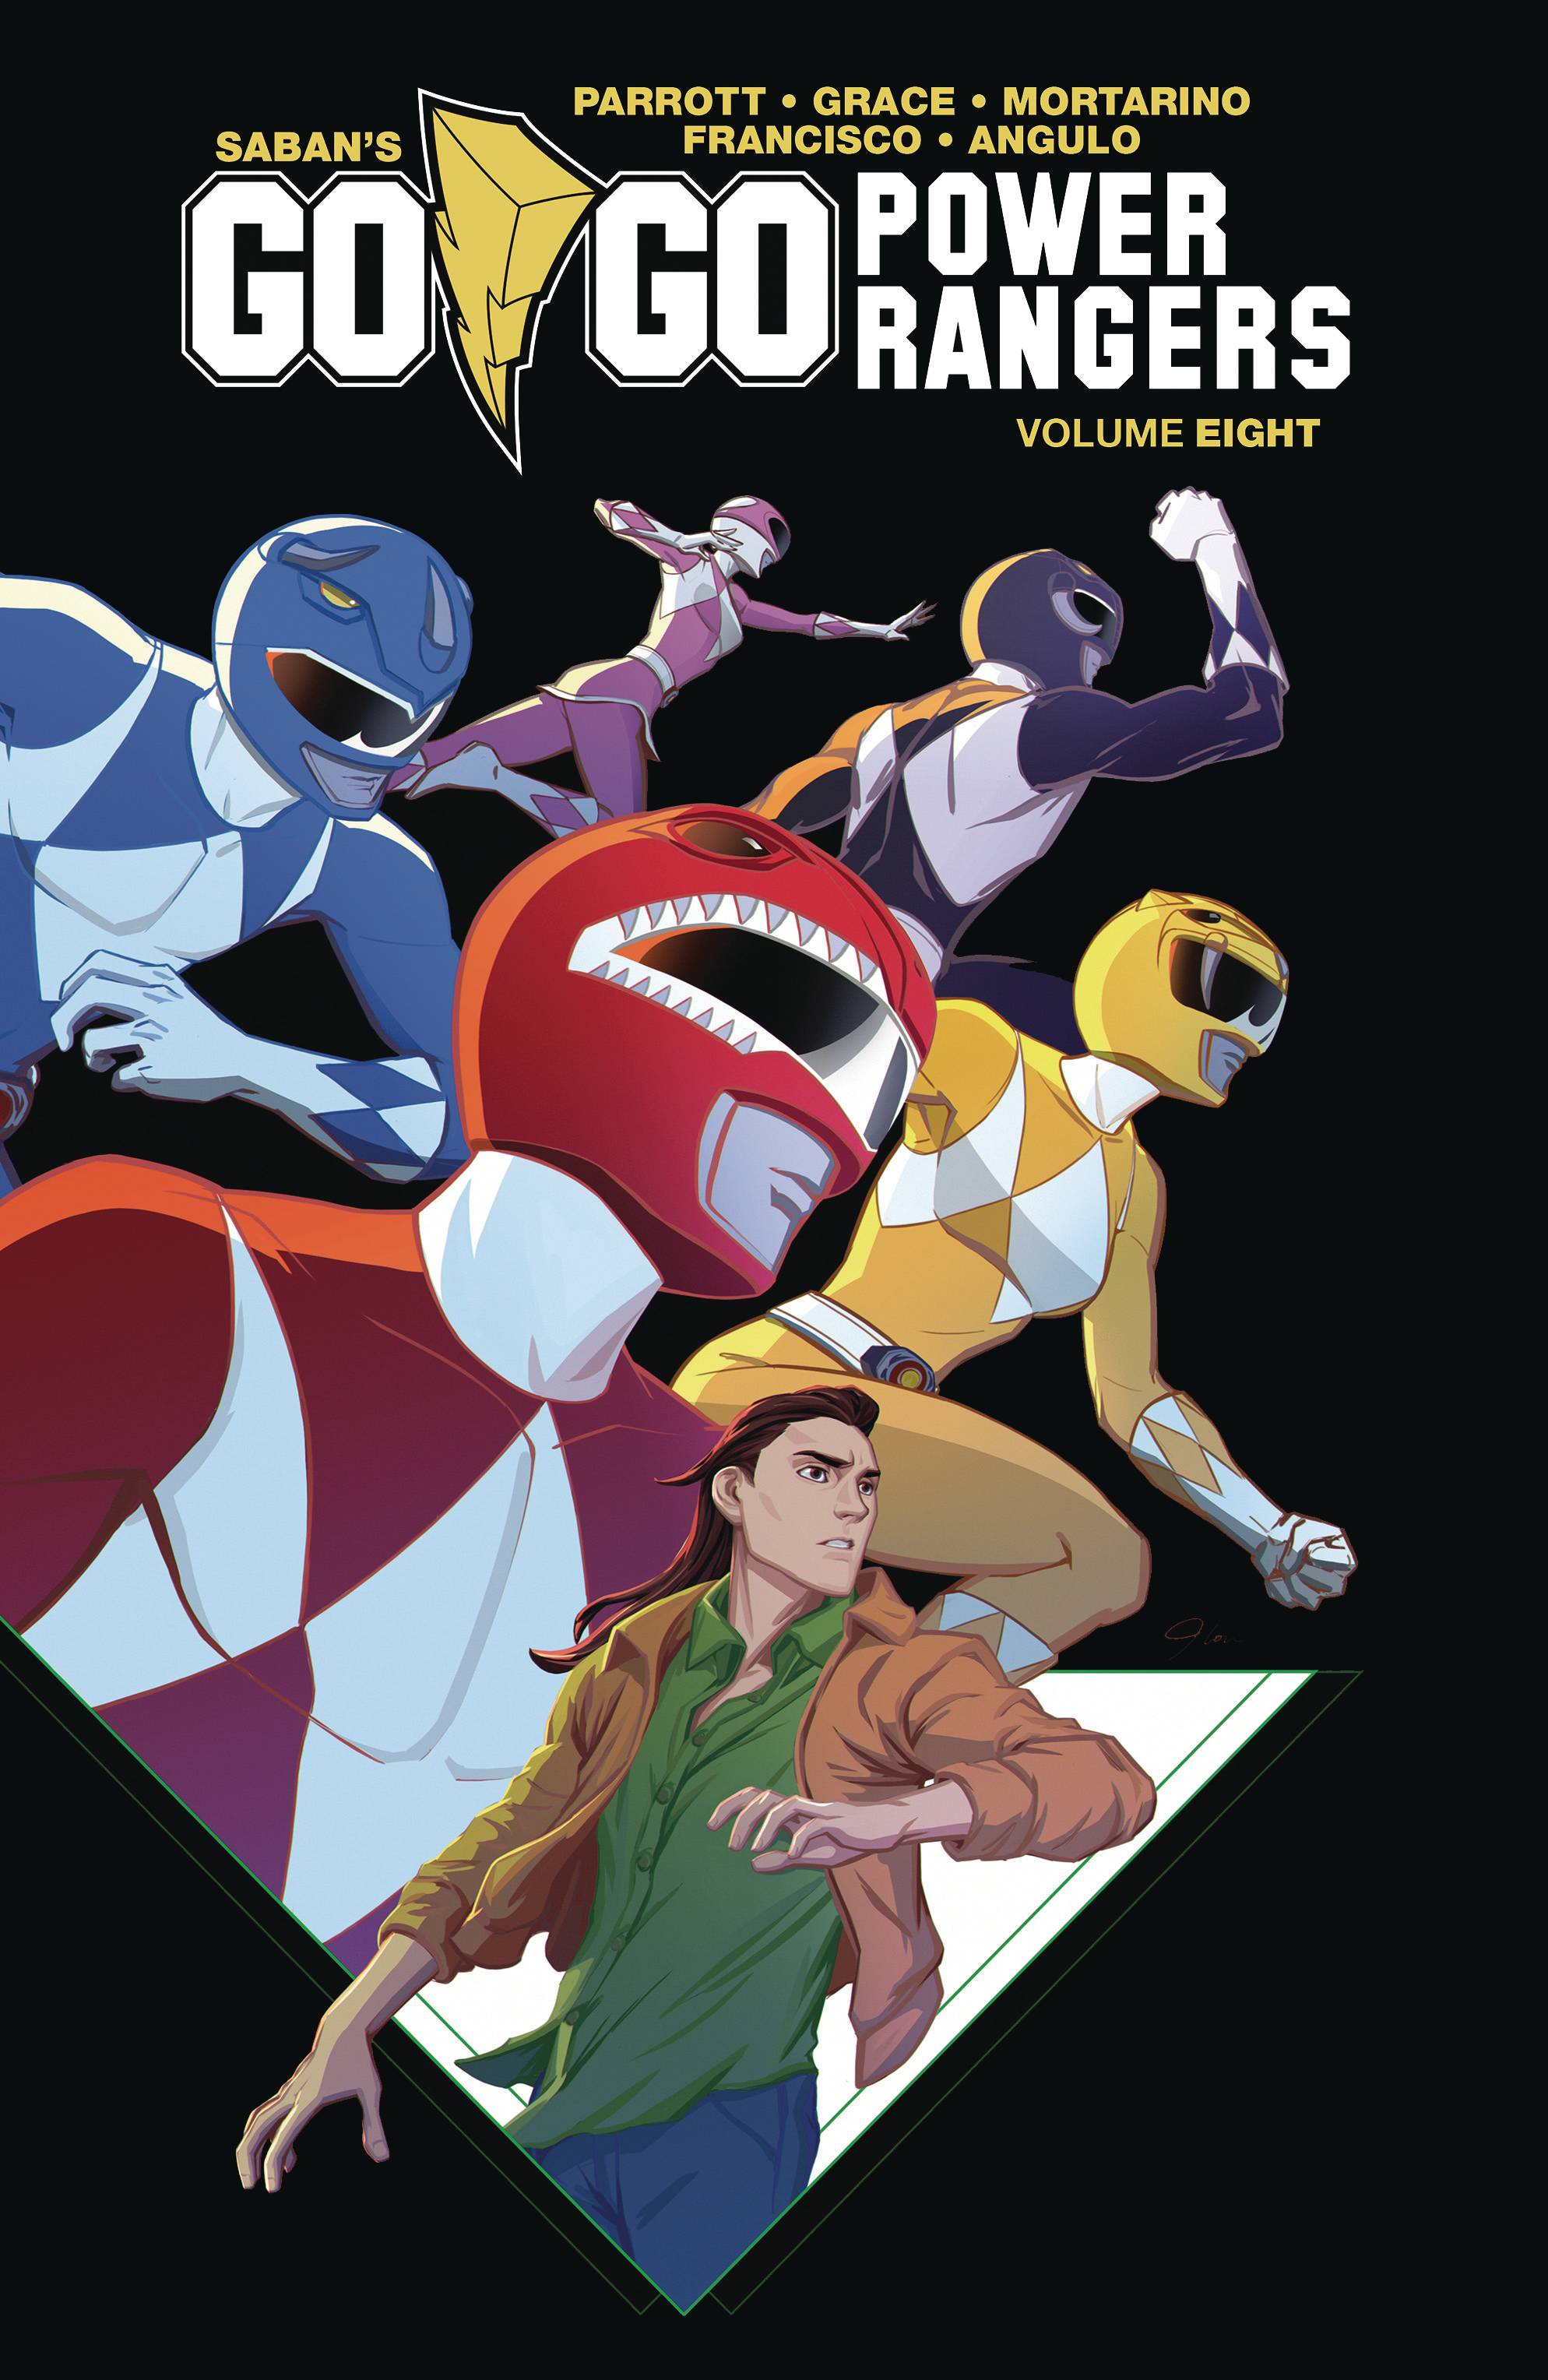 GO GO POWER RANGERS TP 08